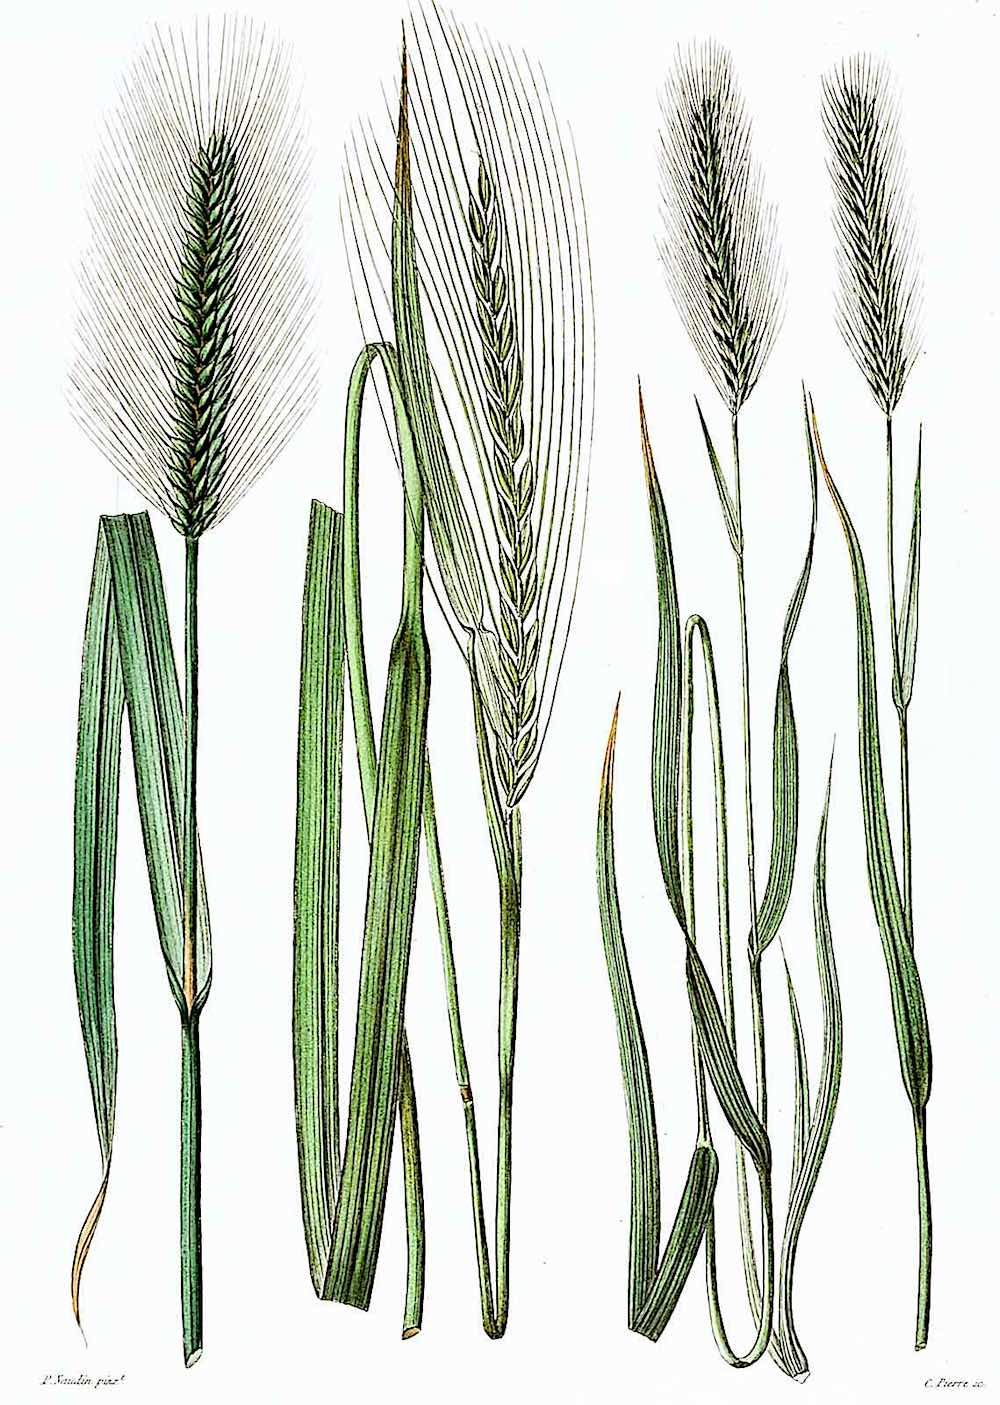 a Pierre Naudin 1800s horticultural illustration of grassy weeds